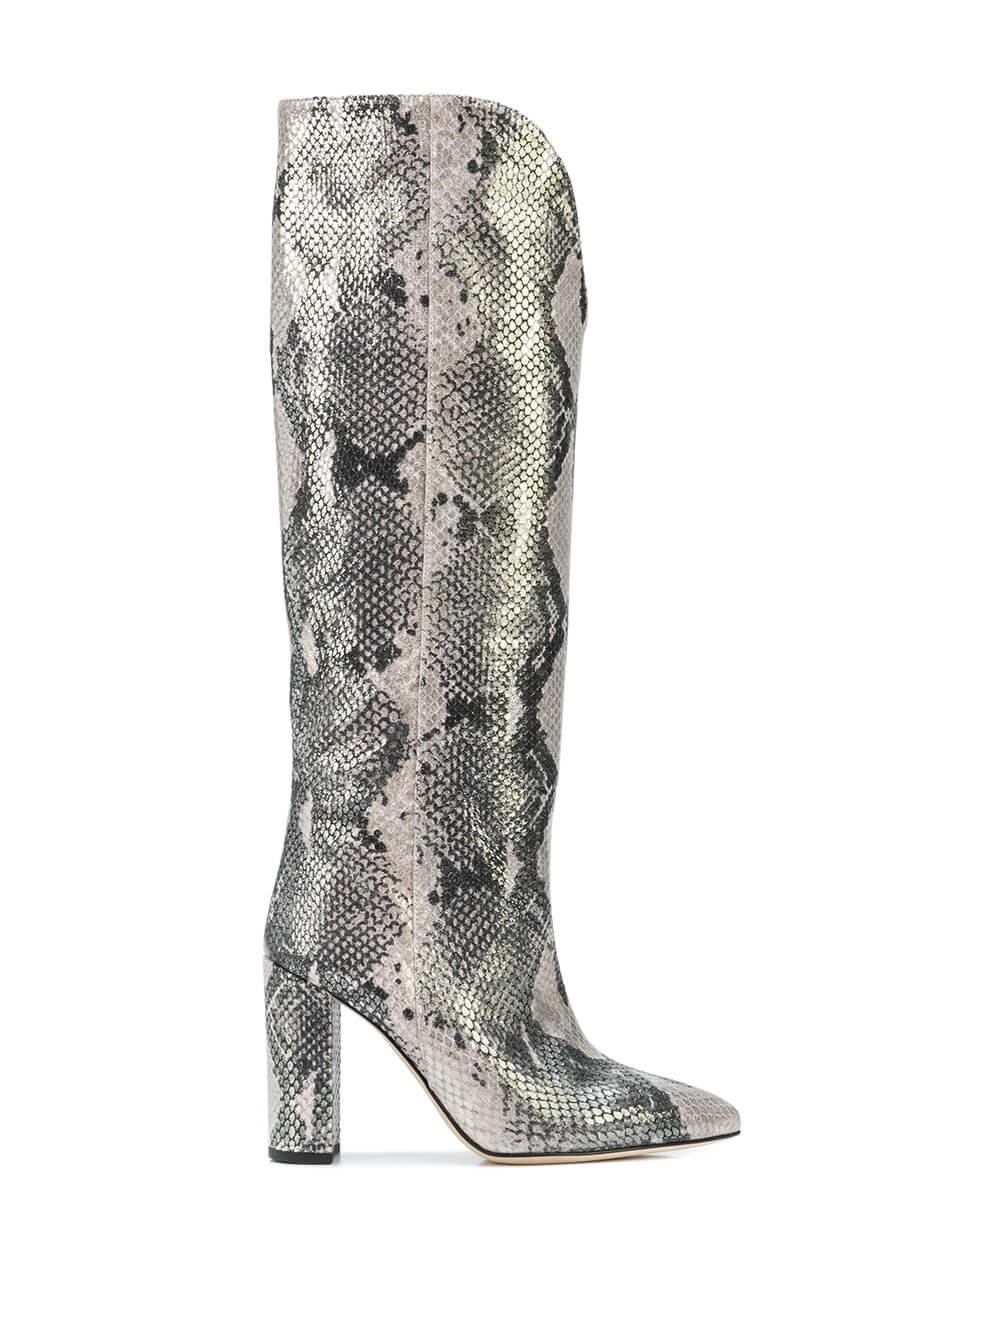 Python Lame Print Hi Rounded Boot